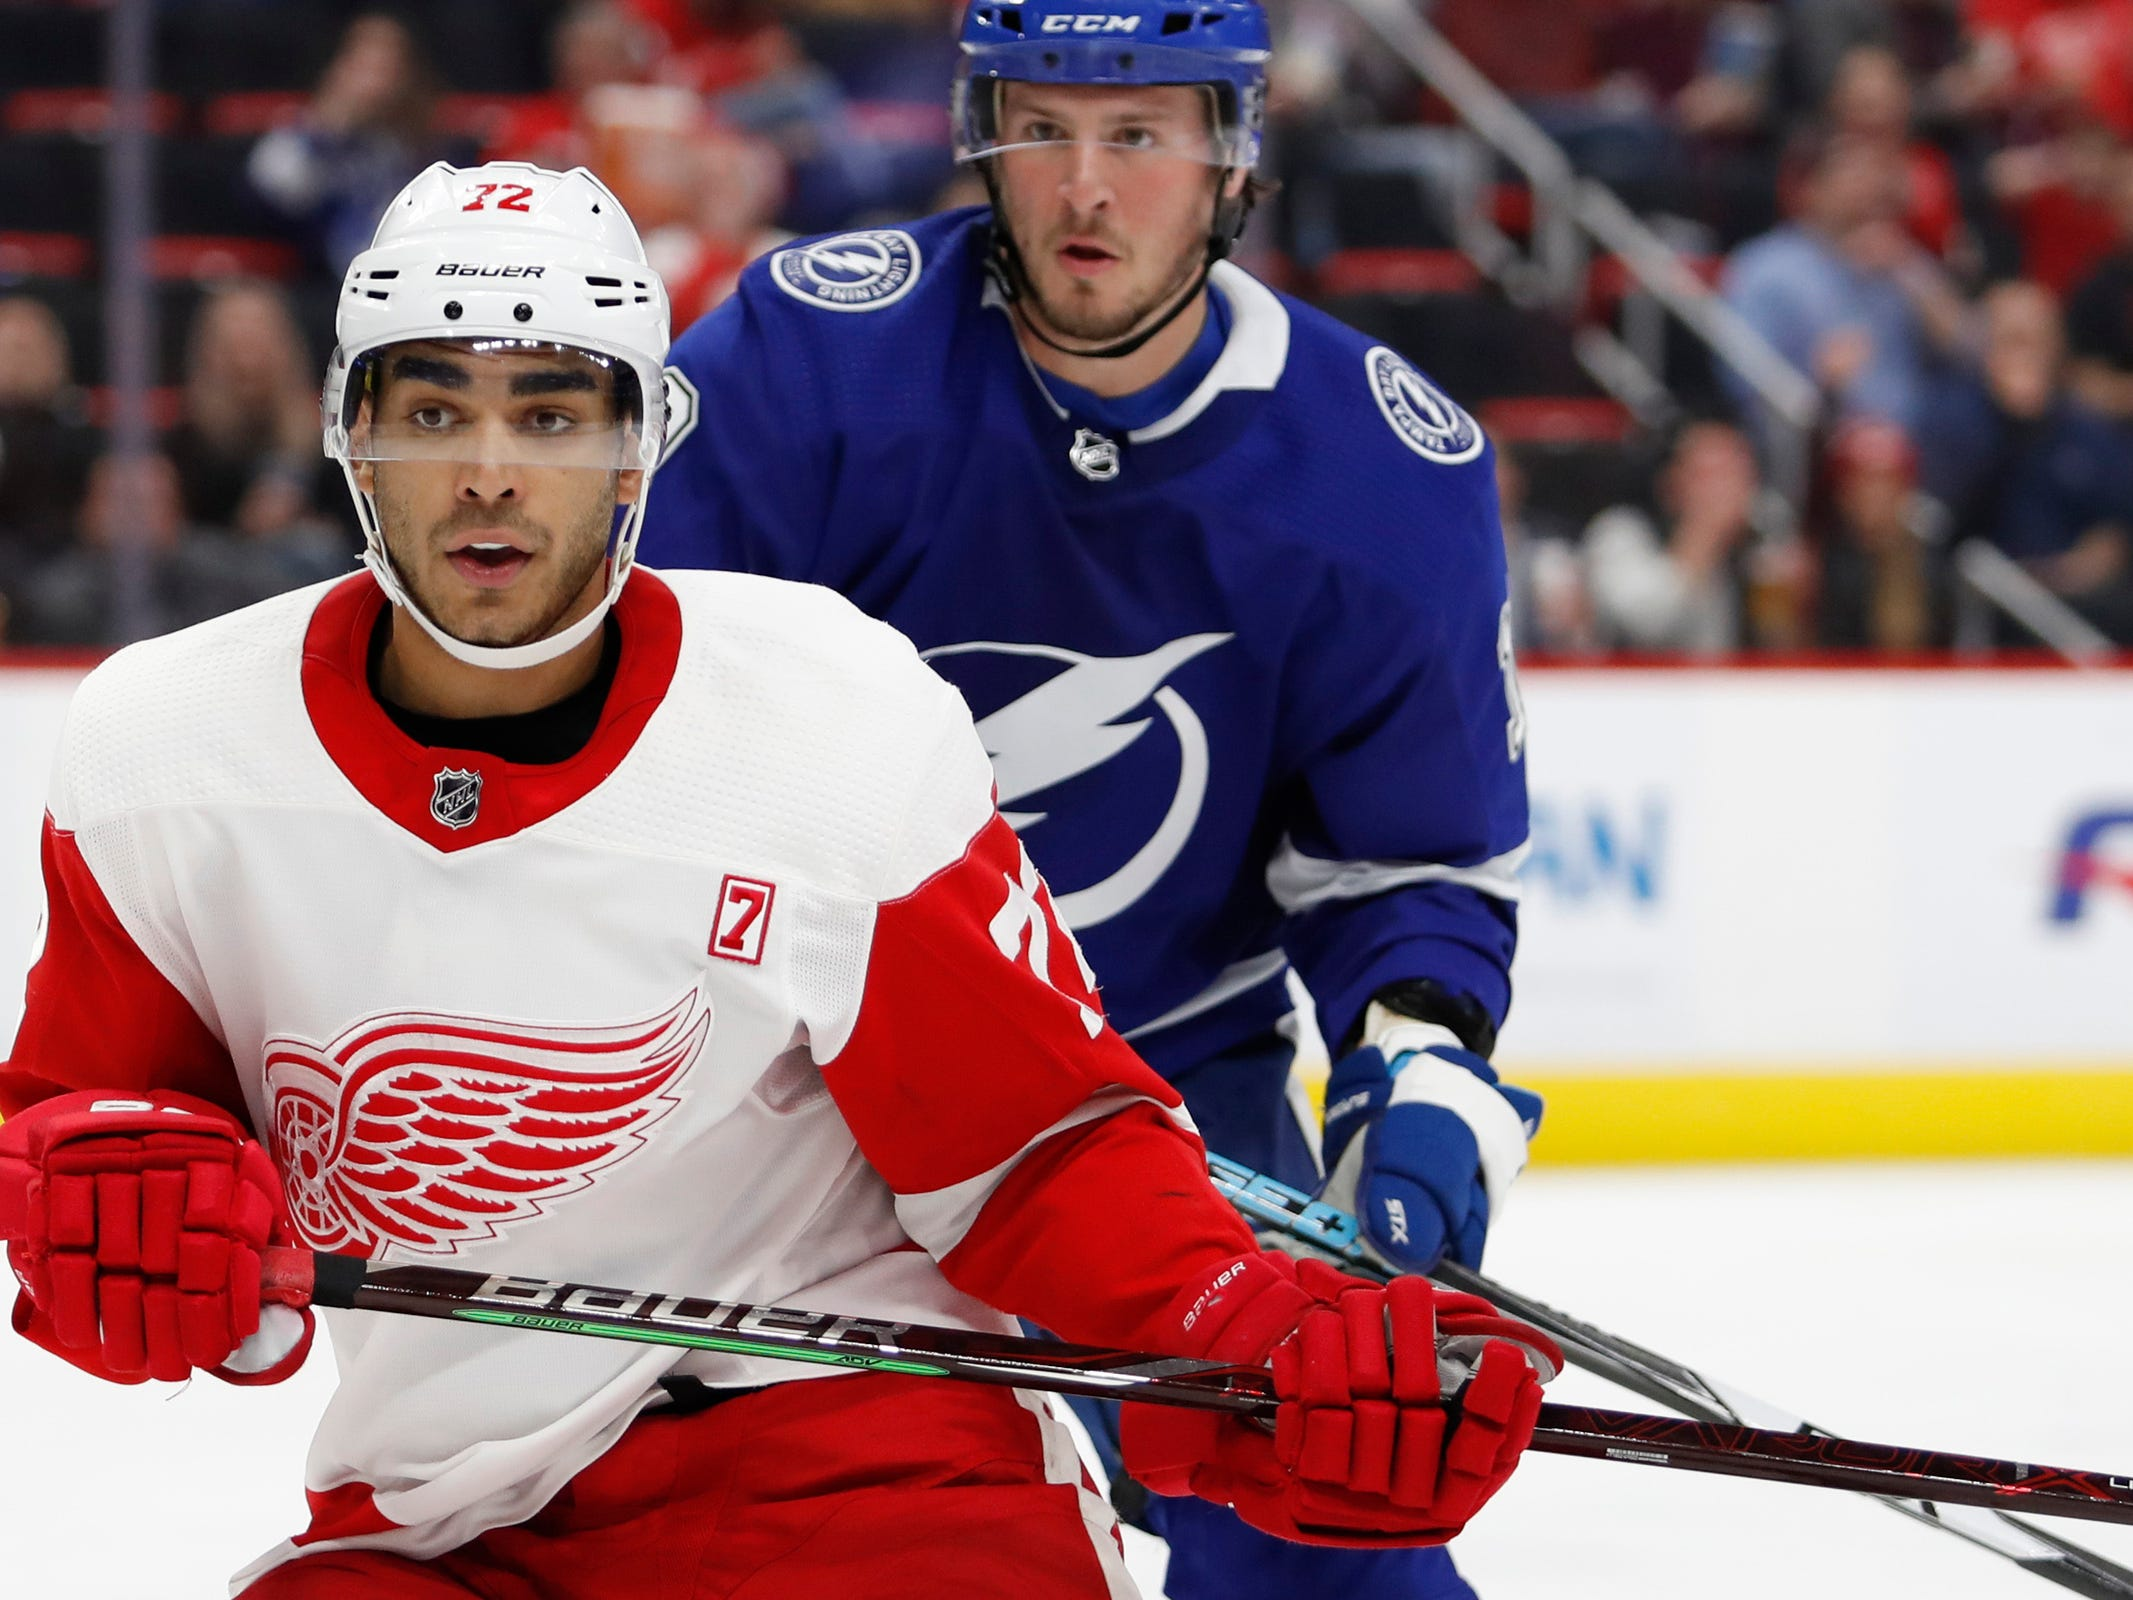 Detroit Red Wings center Andreas Athanasiou (72) gets position in front of Tampa Bay Lightning center J.T. Miller (10) during the second period at Little Caesars Arena on Thursday, March 14, 2019, in Detroit.